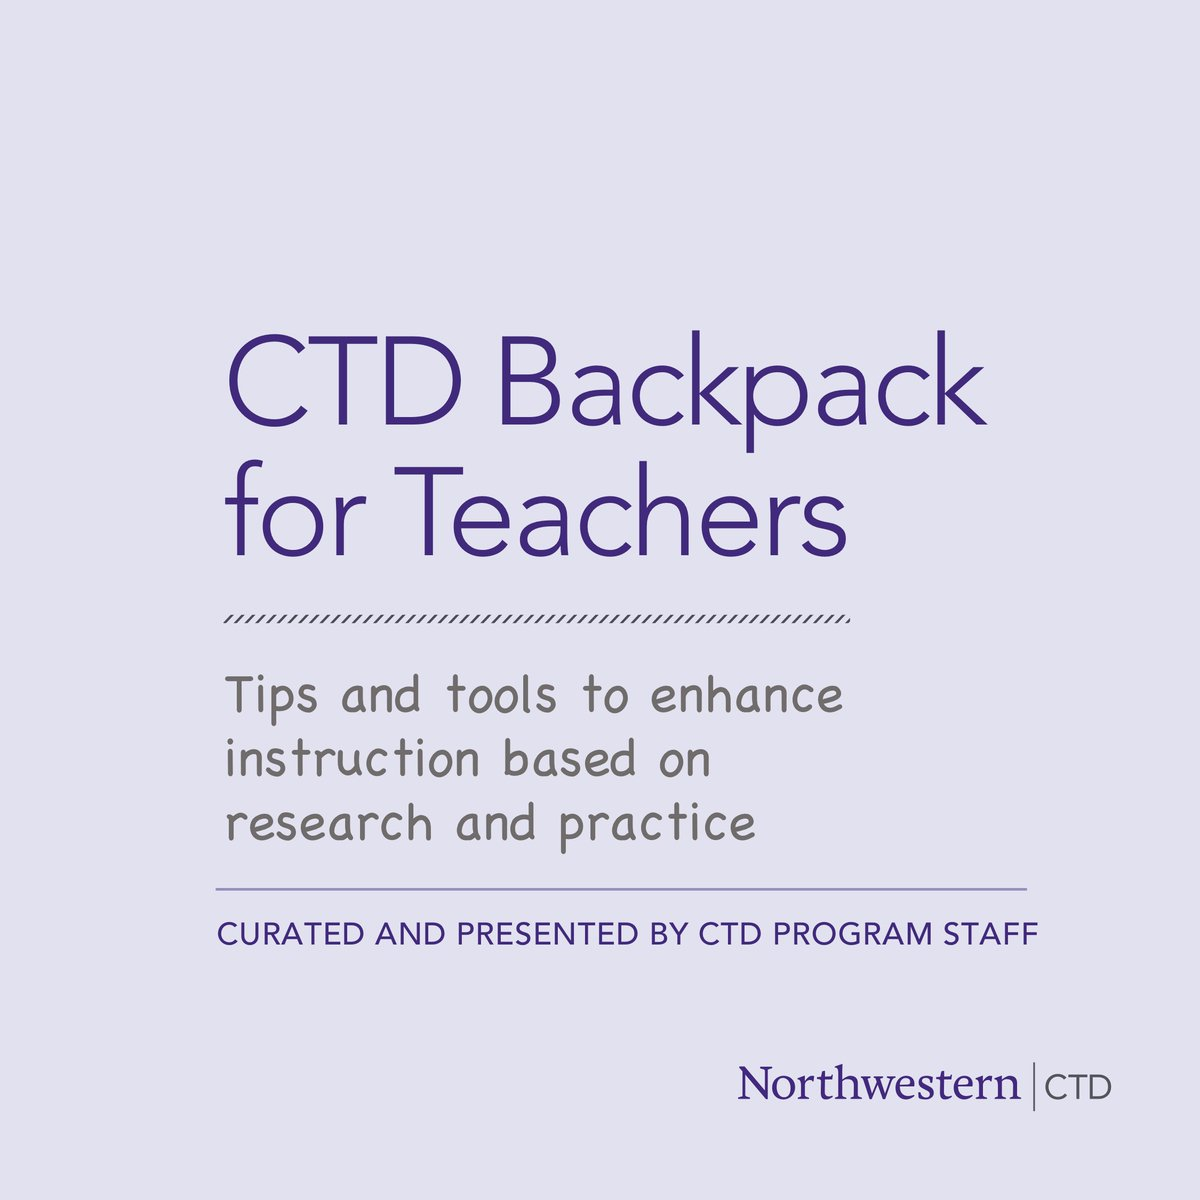 Join CTD Backpack for Teachers, a resource created by CTD consisting of on-demand webinars and live virtual applied practice sessions that provide teachers with tips, best practices, and easy to use materials. Register or learn more at https://t.co/pRfFFPVomb. https://t.co/r3TA4JzBsg